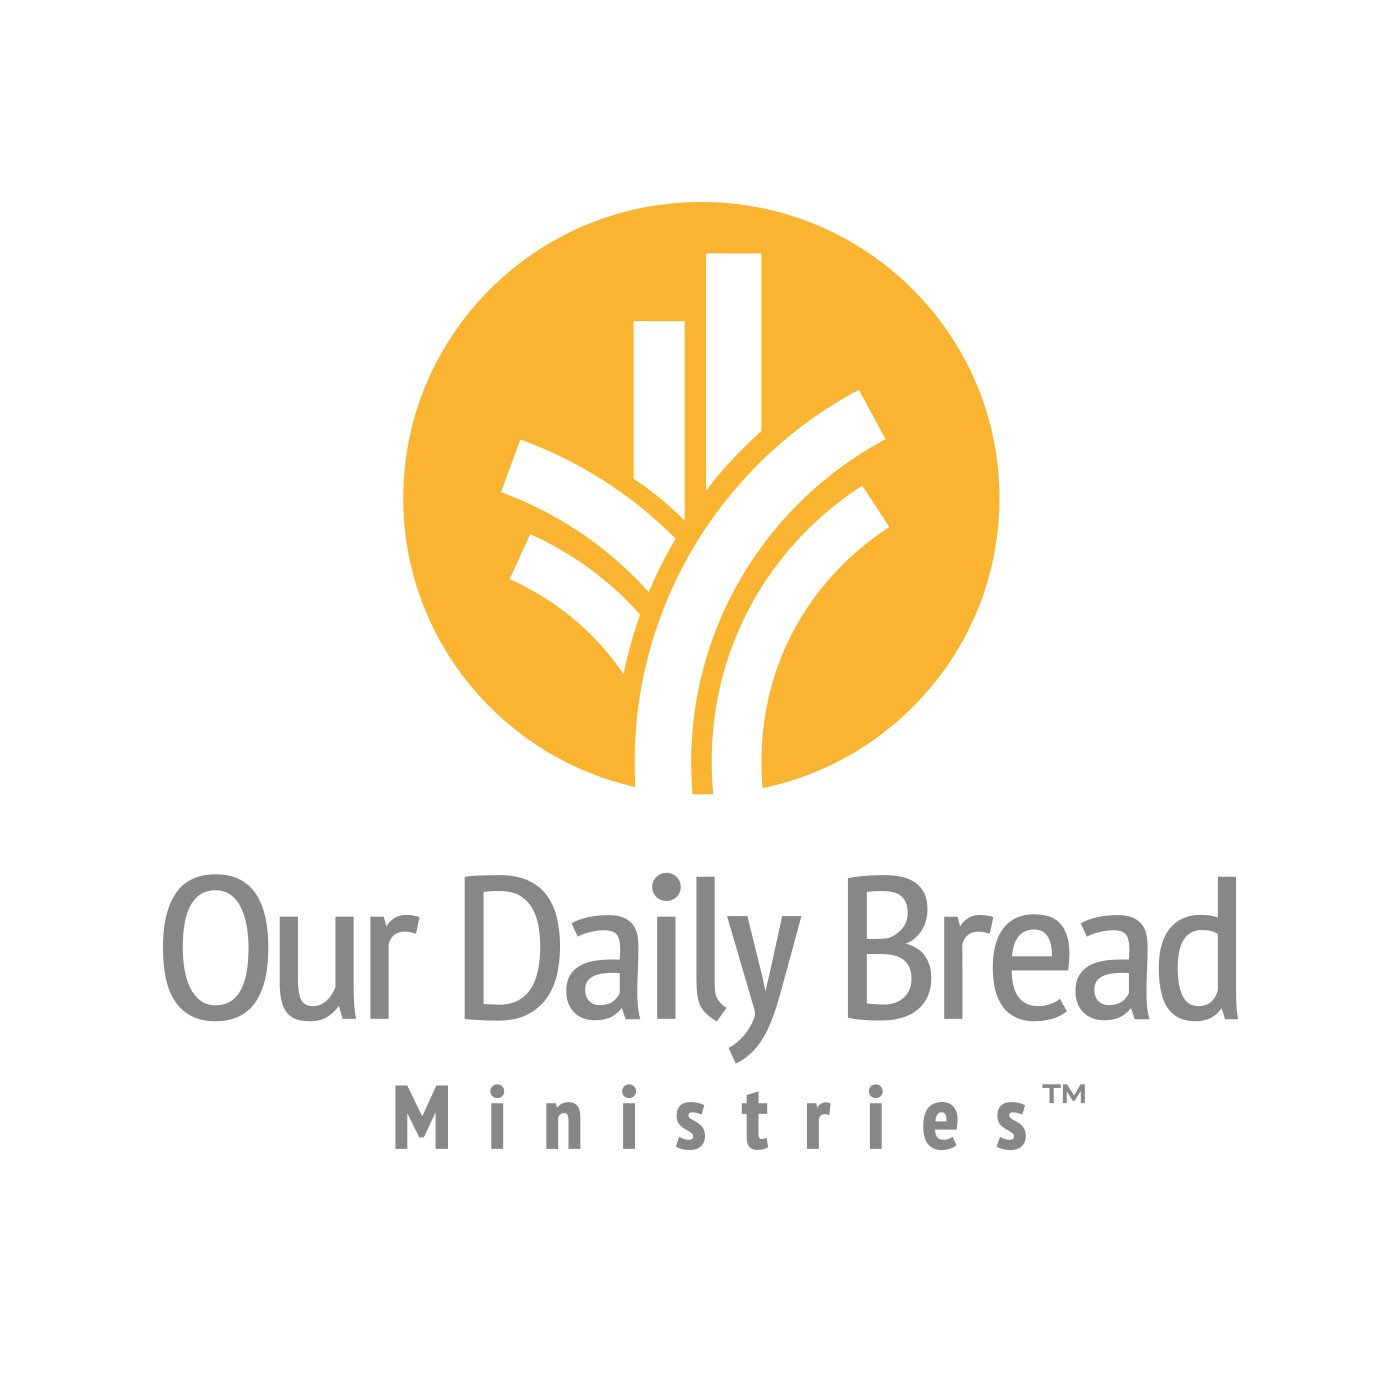 Our Daily Bread 10 December 2019, Our Daily Bread 10 December 2019 – Grace at the End, Latest Nigeria News, Daily Devotionals & Celebrity Gossips - Chidispalace